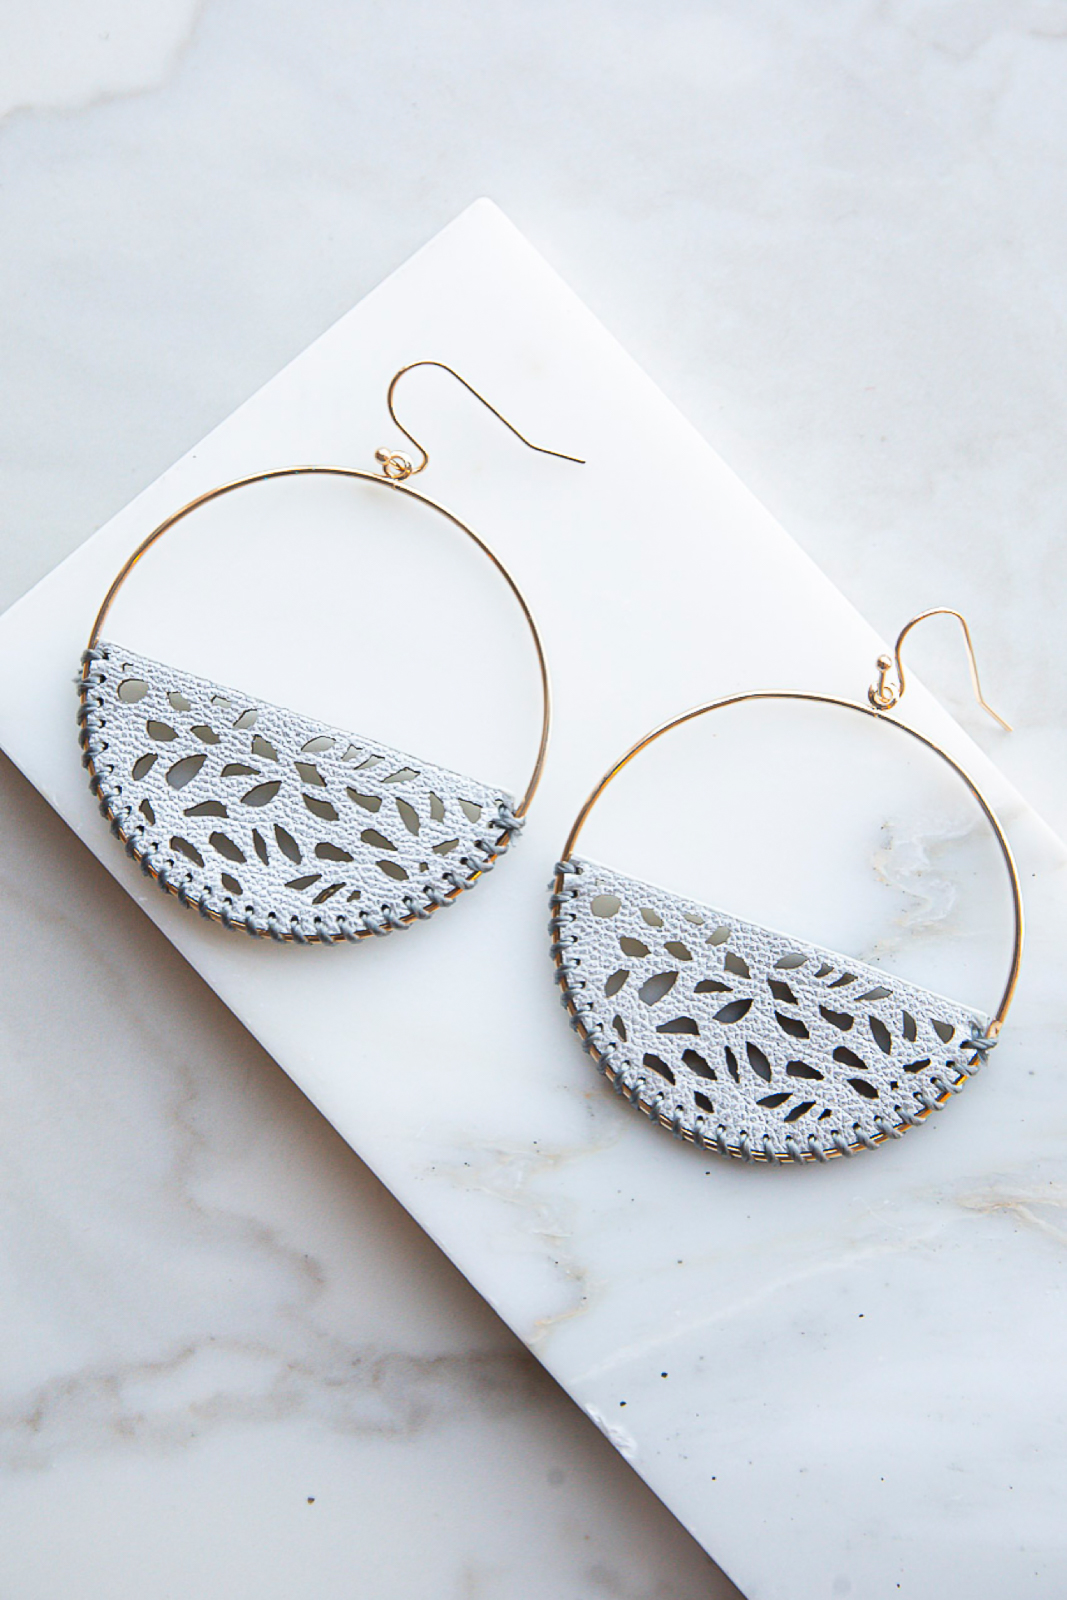 Grey Faux Leather Earrings with Laser Cut Out Details